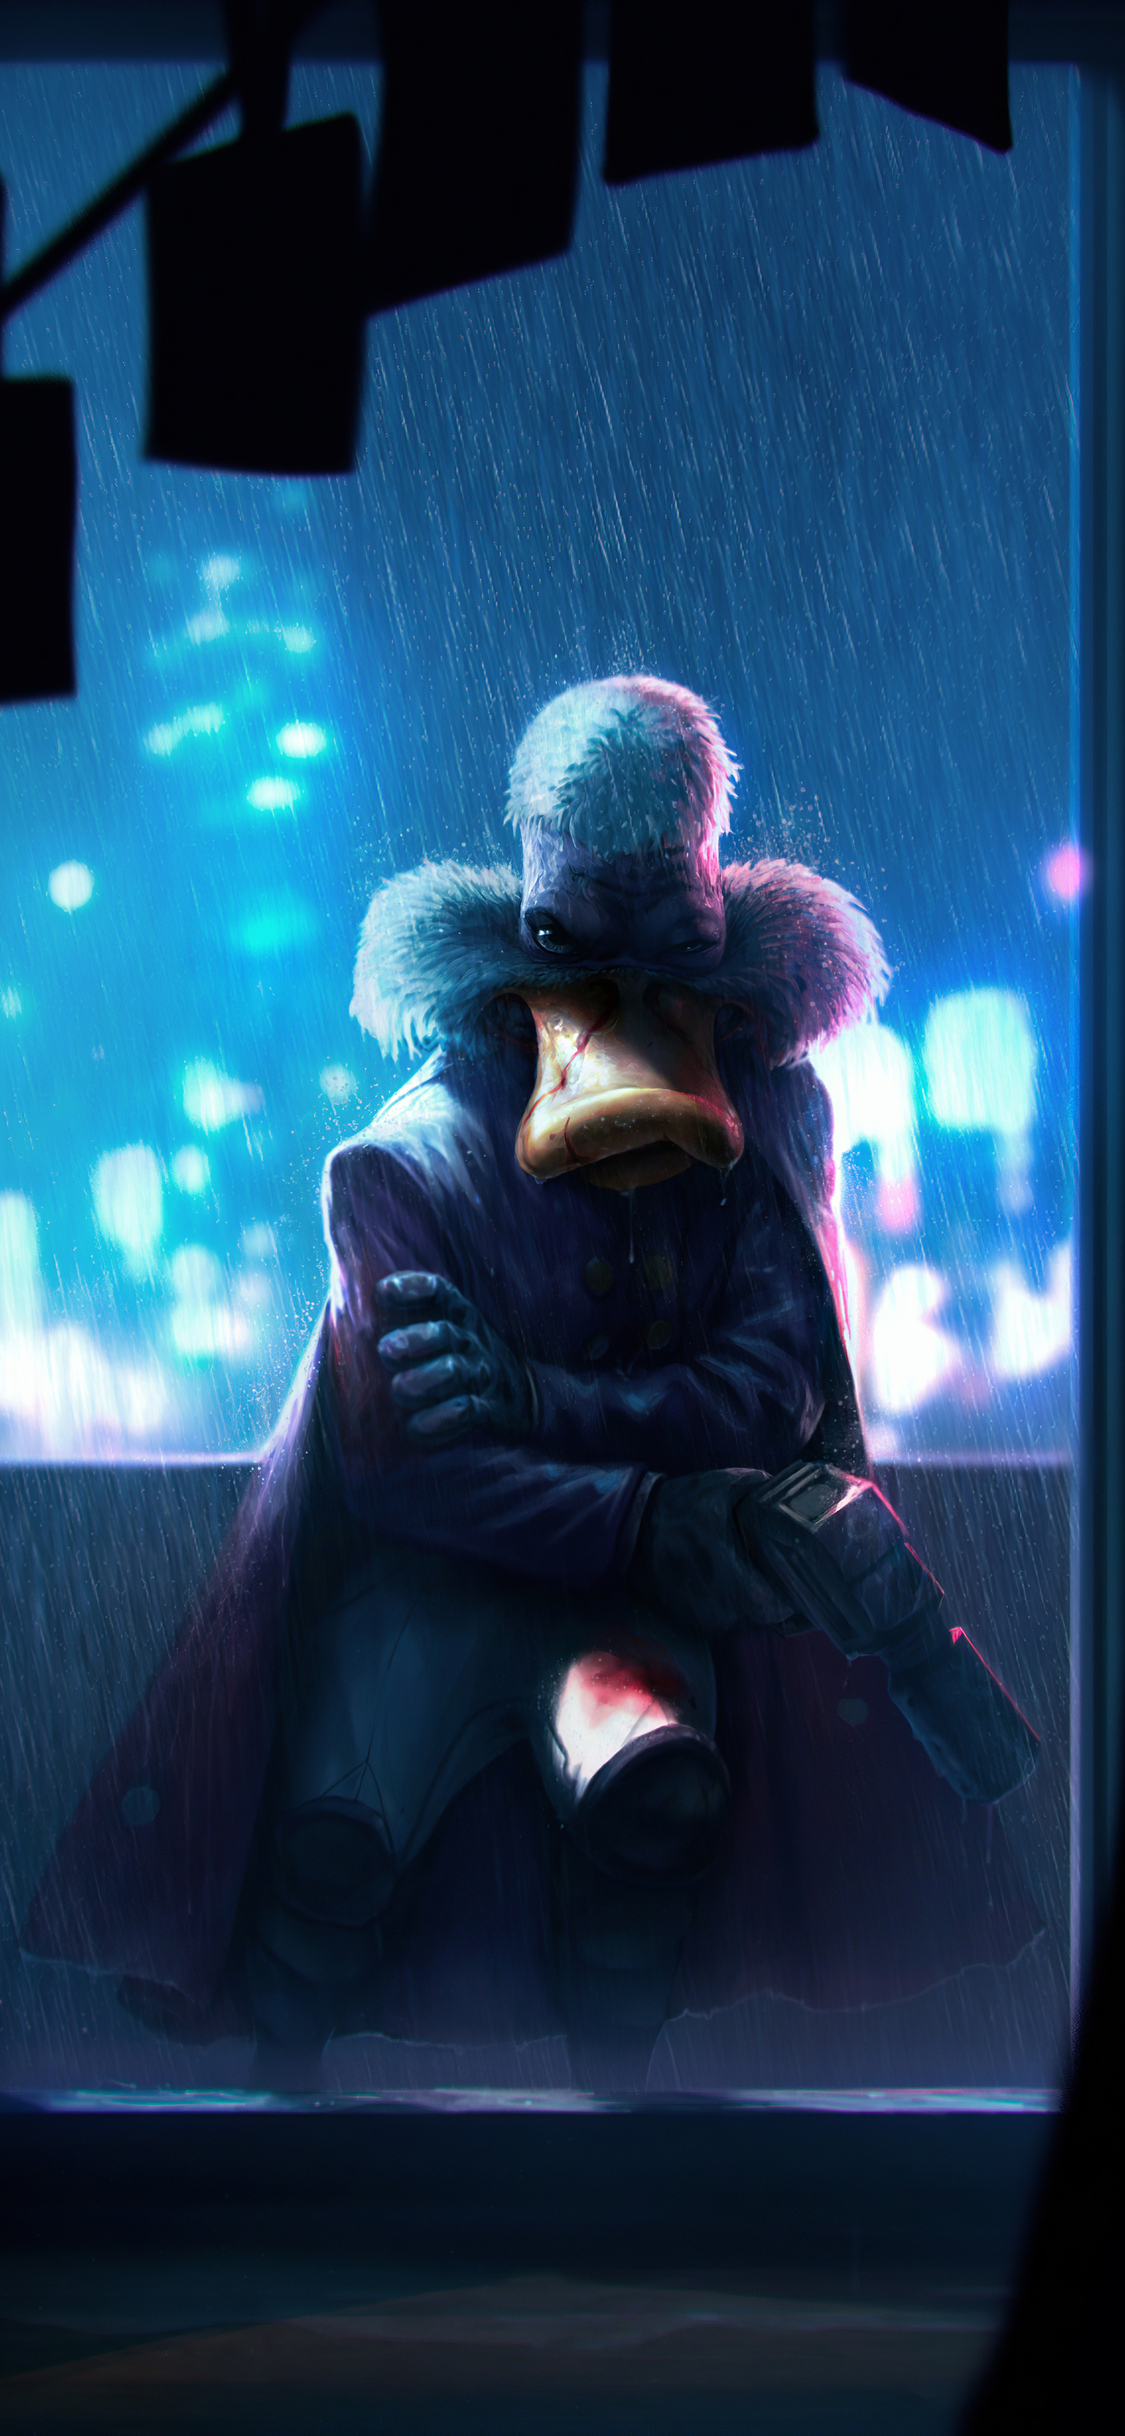 darkwing-duck-4k-dl.jpg